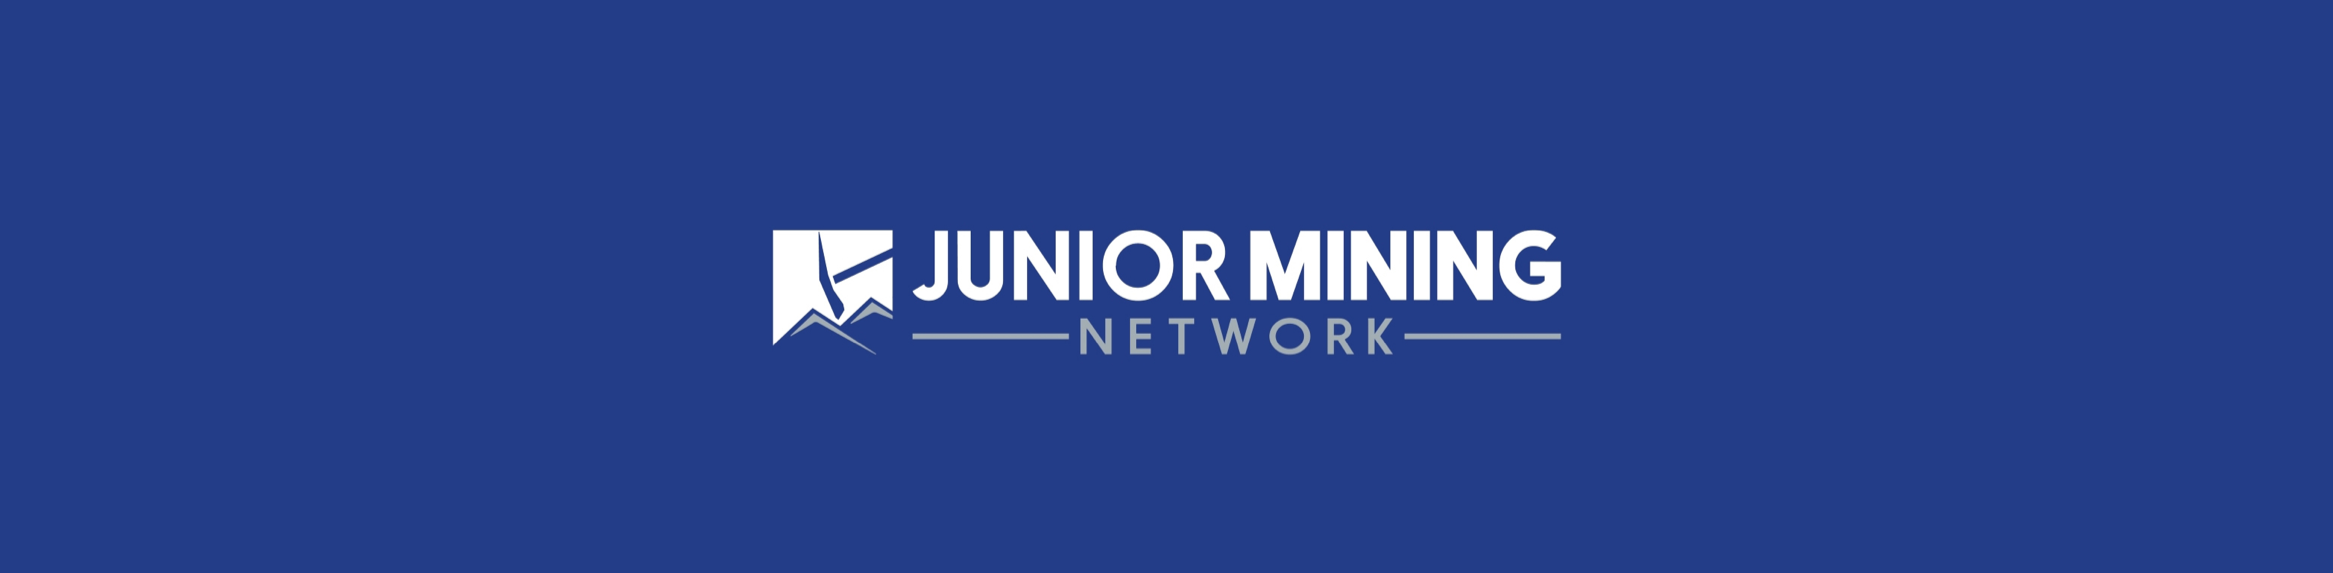 crux investor: The Best Mining Resources for Investors - junior mining network